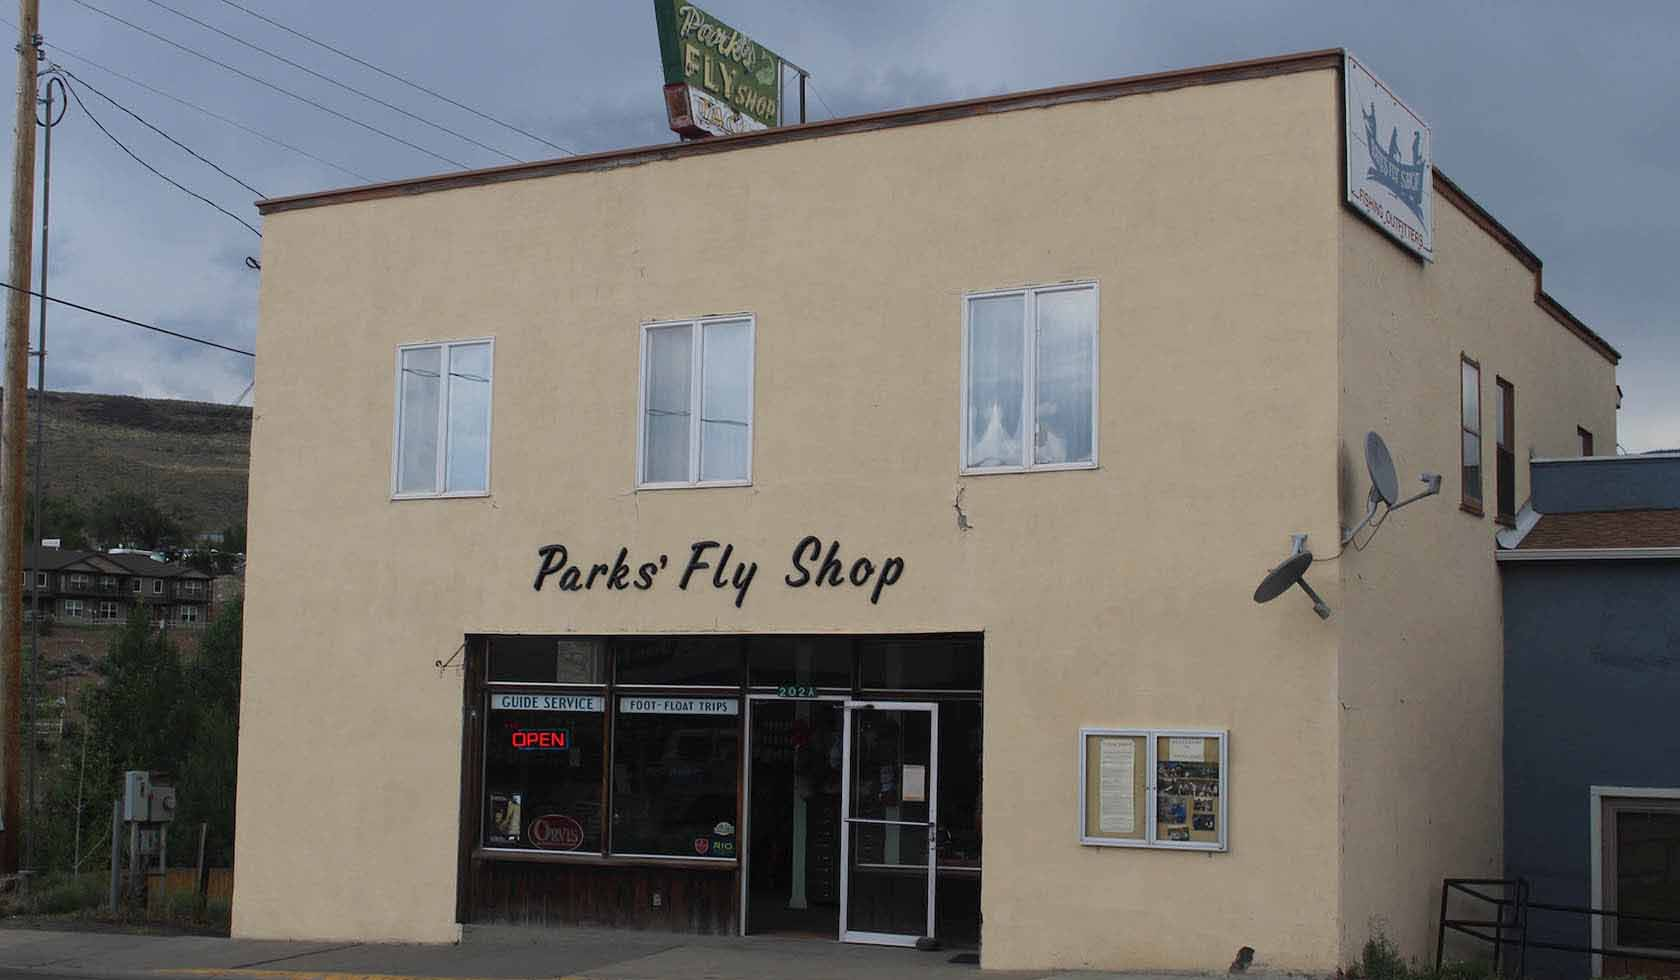 Parks' Fly Shop profile image